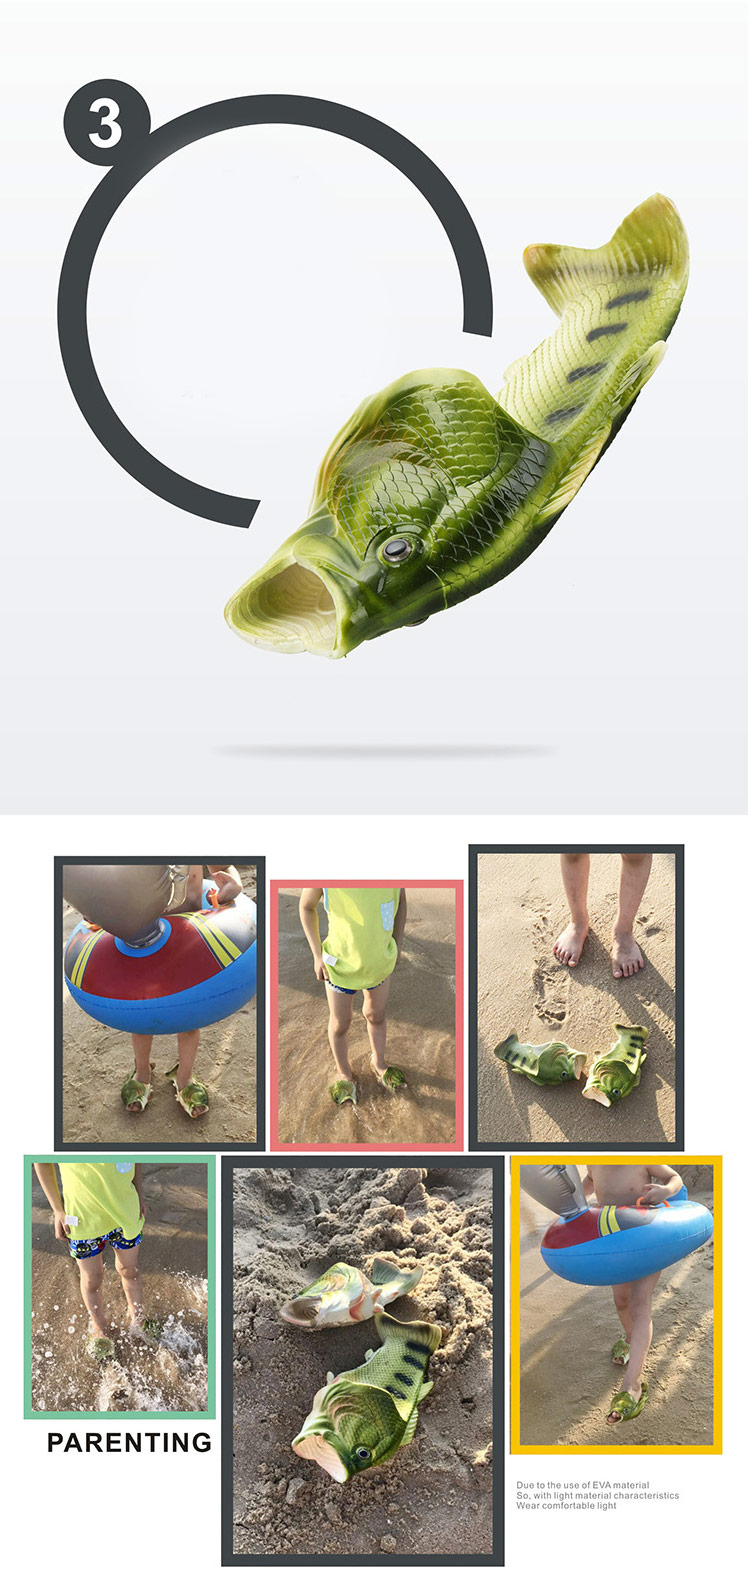 H403b1208a2e84622968282336424852dP Family Funny Fish Slippers